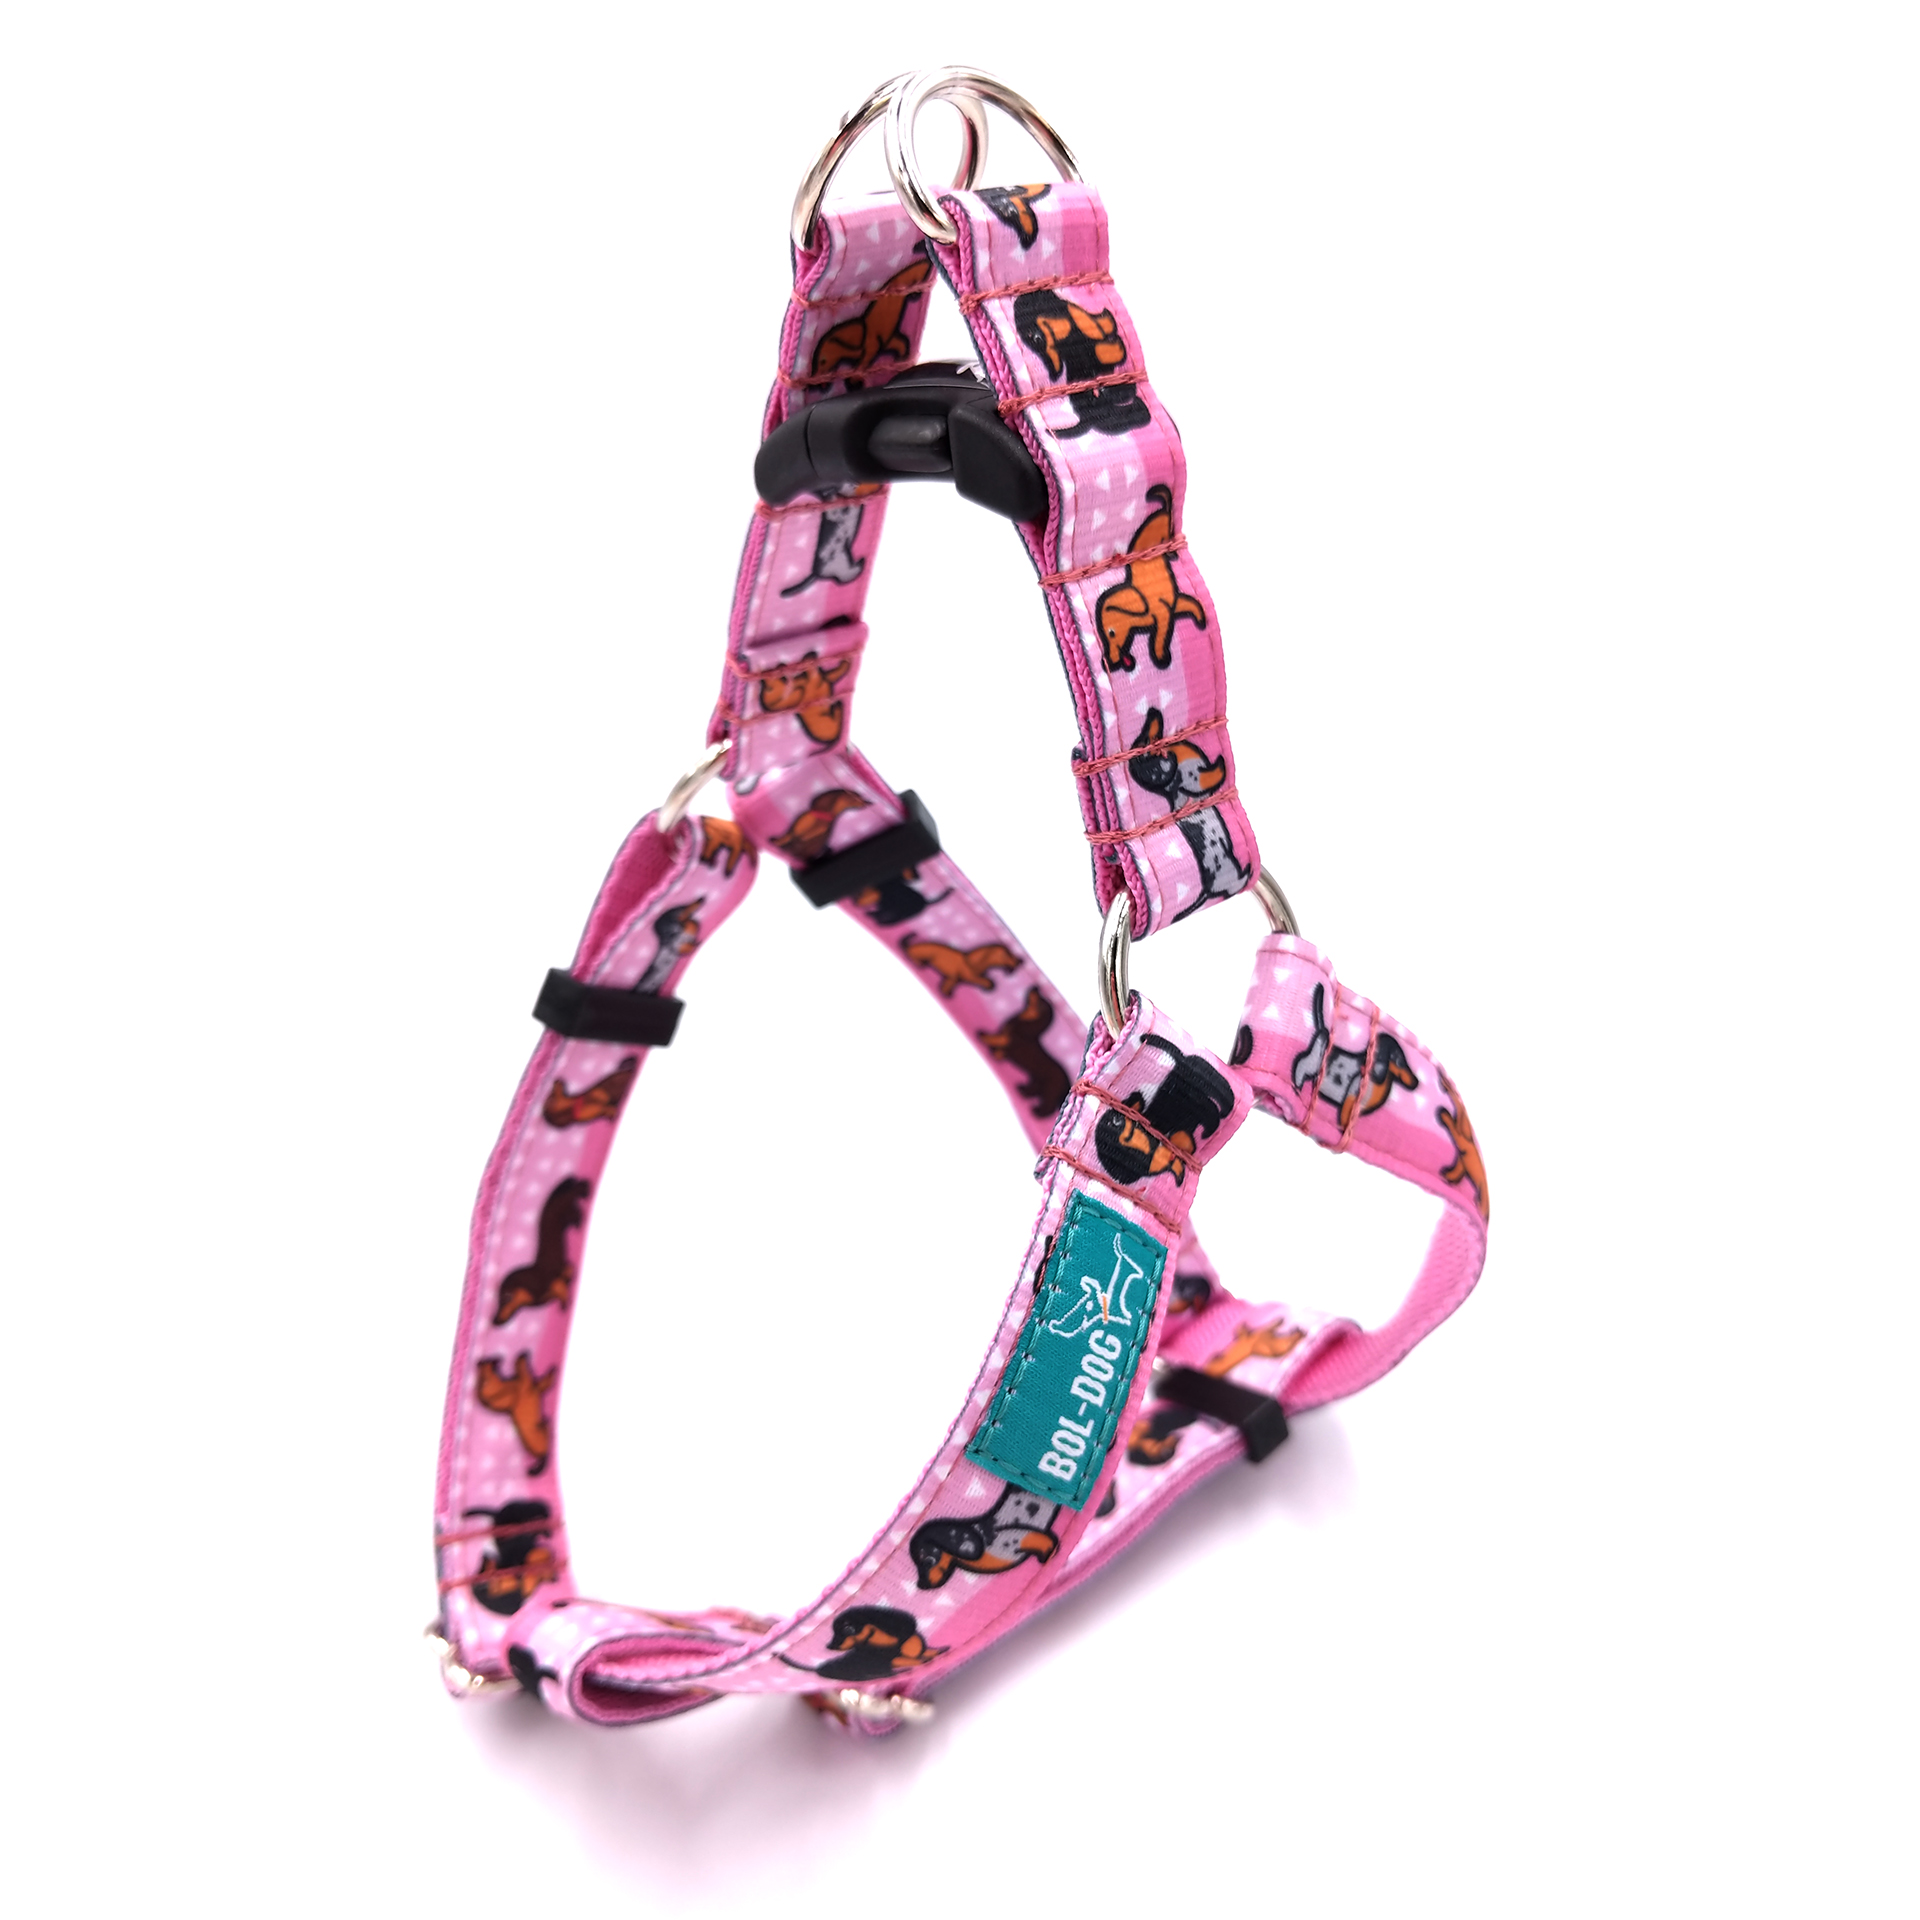 Doxie girl dog harness